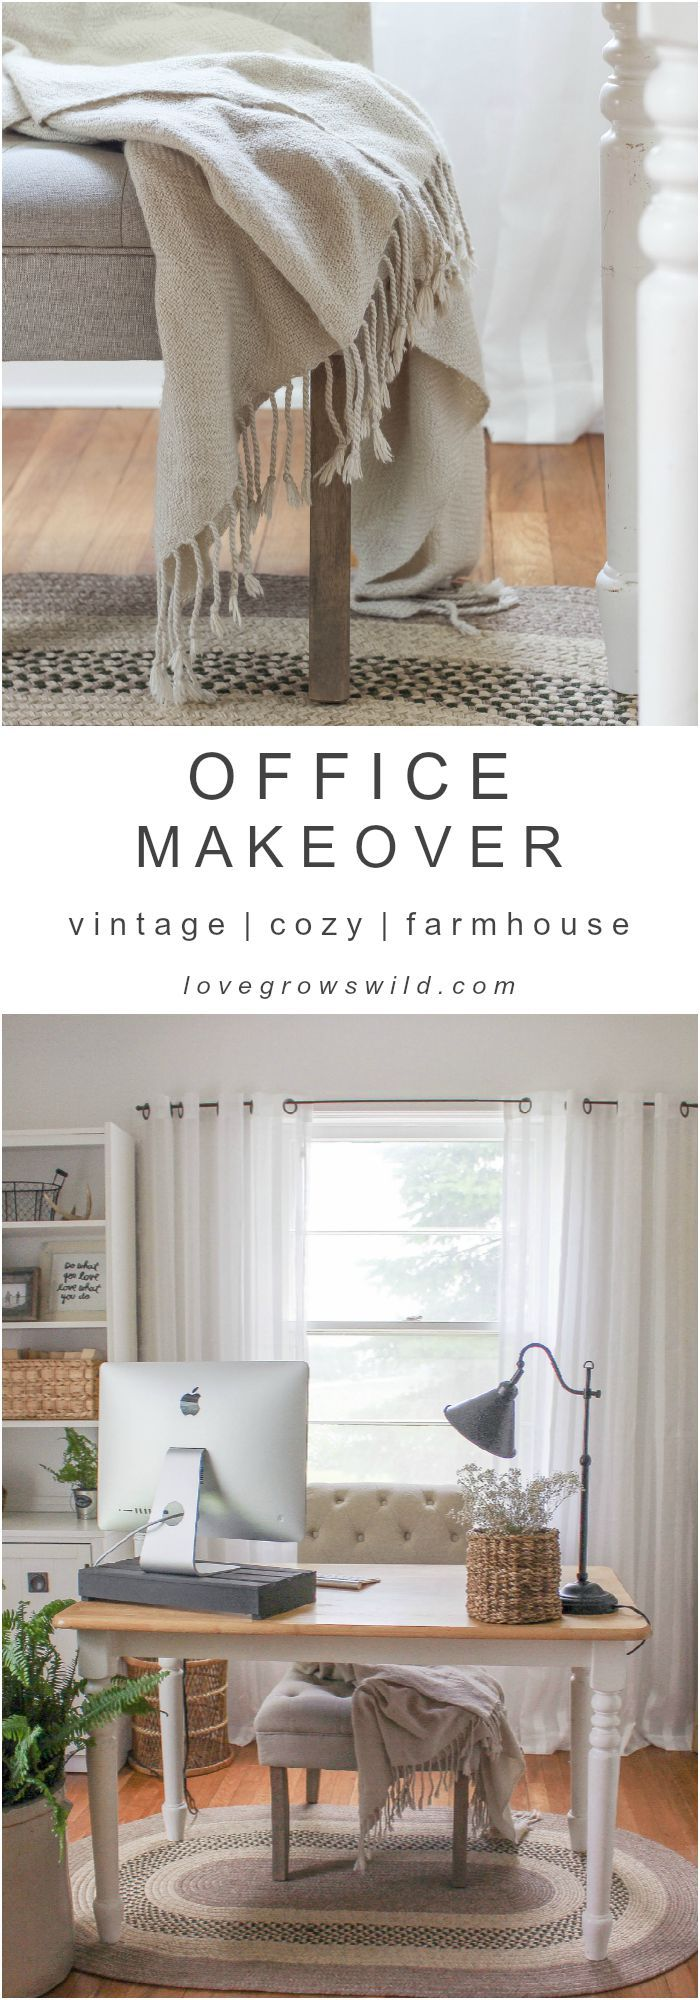 A must-see makeover! Check out the transformation of this gorgeous home office decorated with vintage finds and tons of farmhouse charm at LoveGrowsWild.com